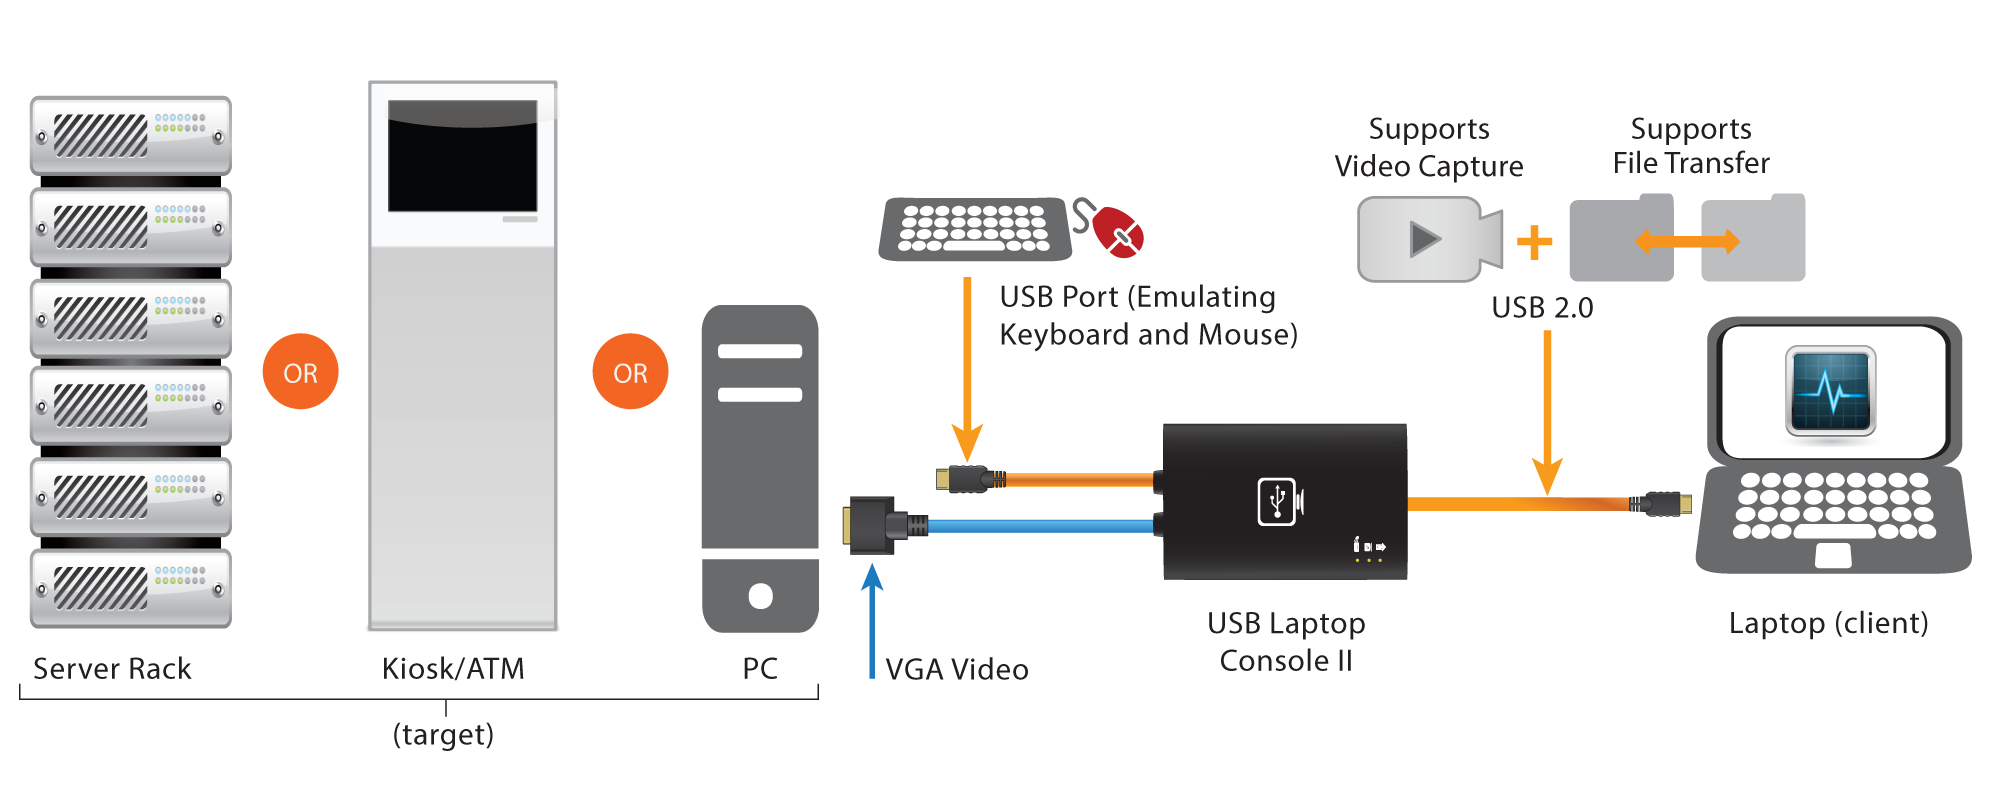 USB-Laptop-Console-II-Schematic.png